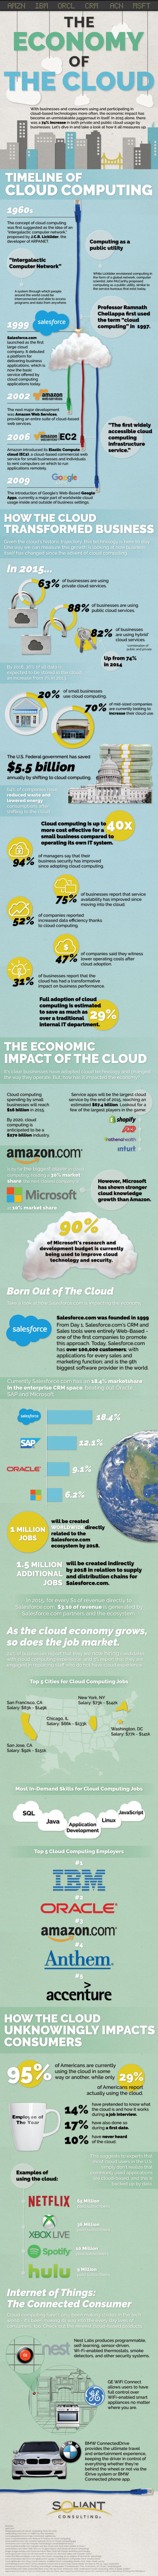 how cloud technologies and cloud companies have affected the economy